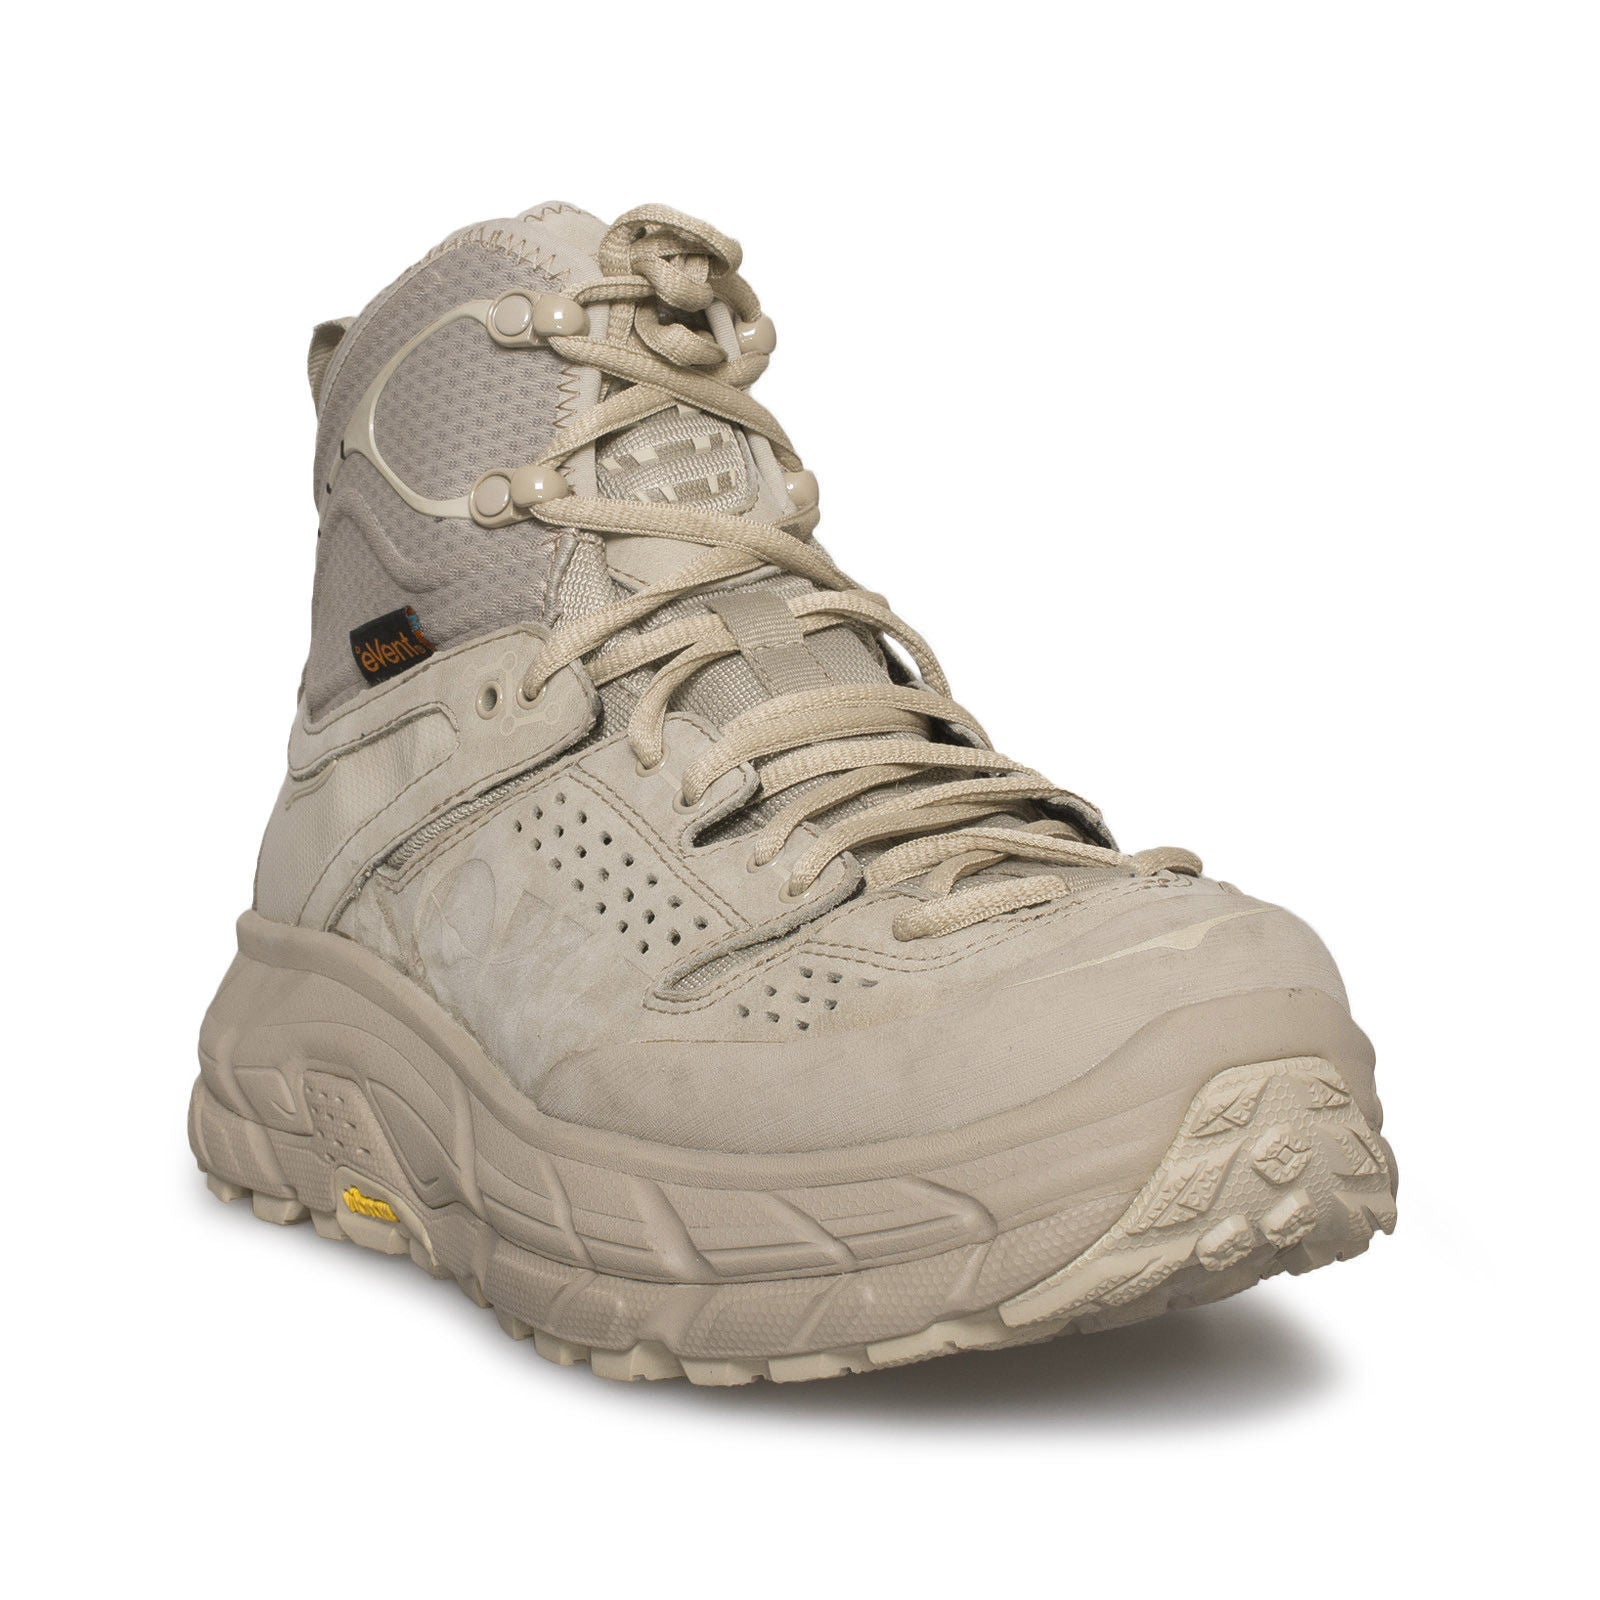 9ca95ffd400 Hoka One One Tor Ultra Hi WP Oxford Tan Hiking Boots